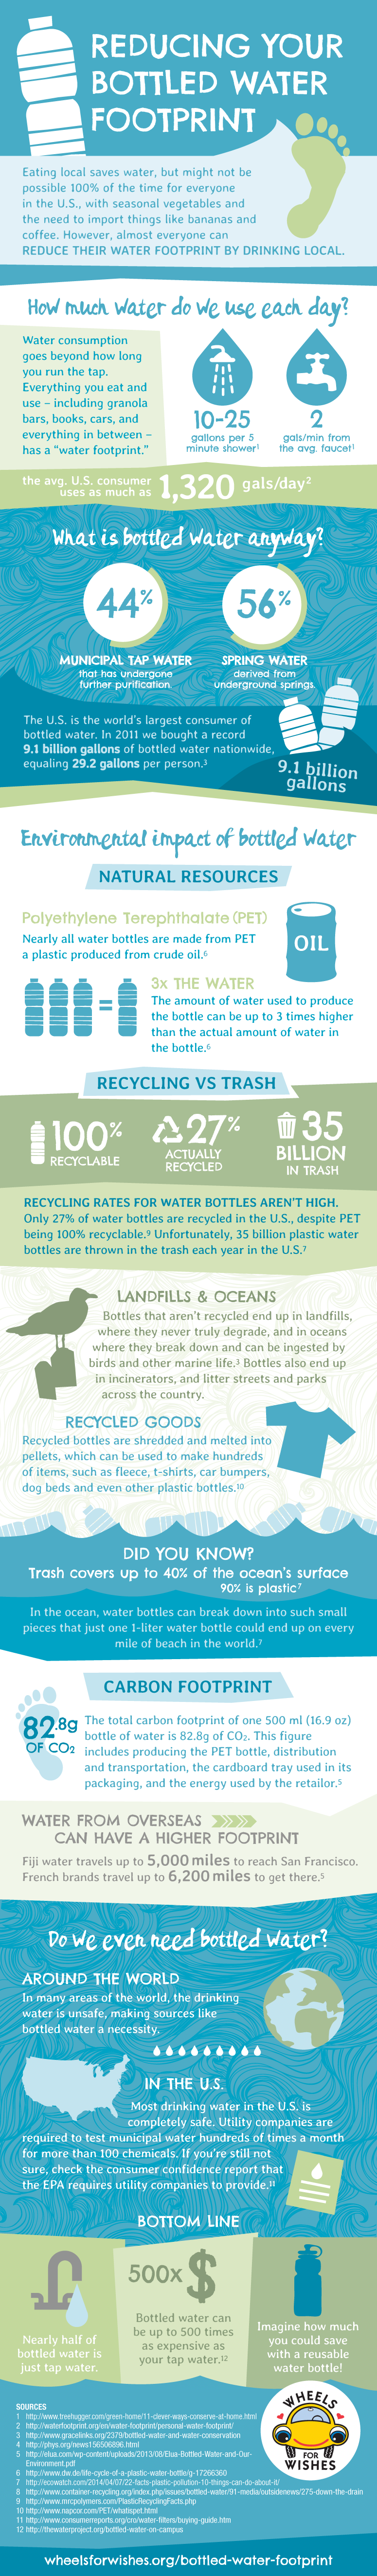 Reducing Your Bottled Water Footprint